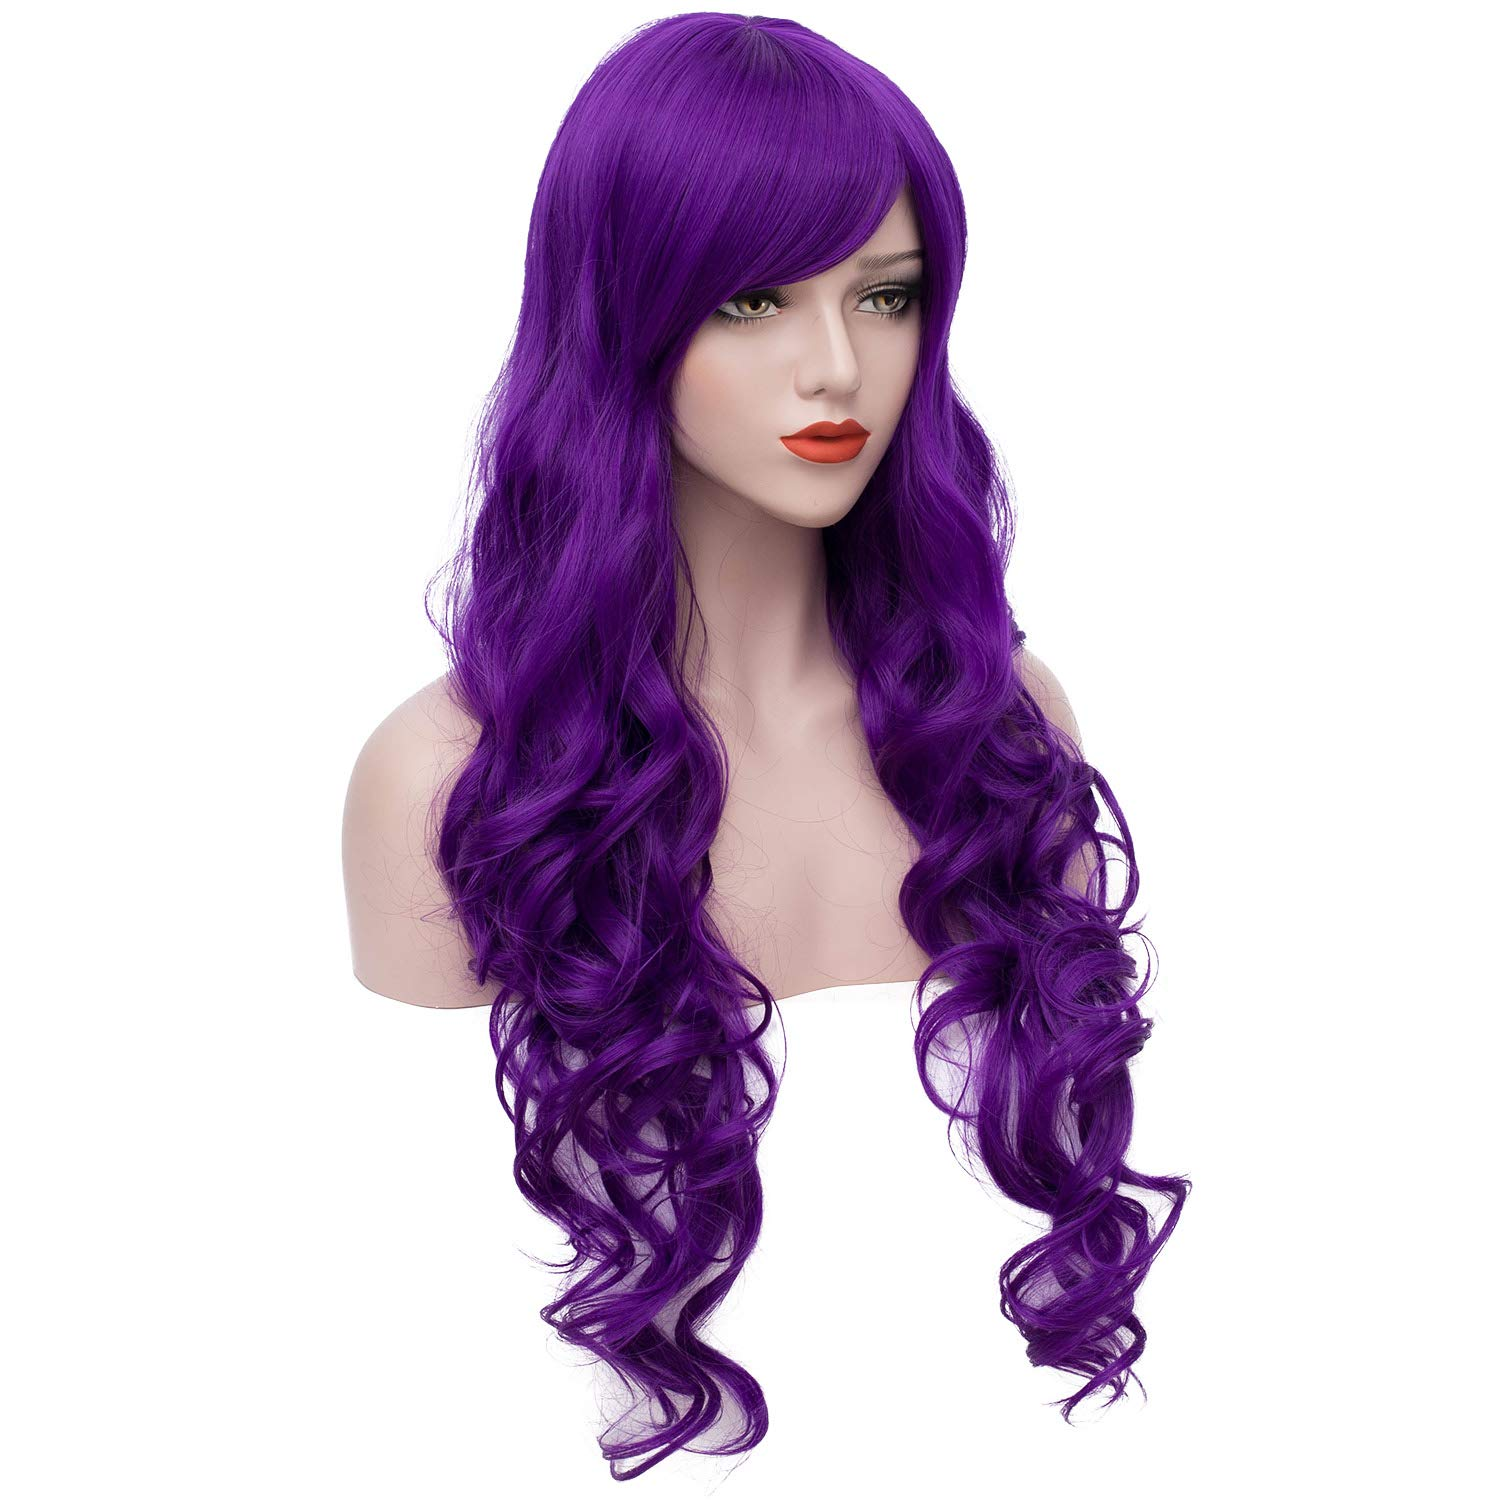 Blue Mixed Pink Upgrade Version Women Wigs Gradient Long Curly Hair Cosplay Party Costume Wig with A Hairnet BU040